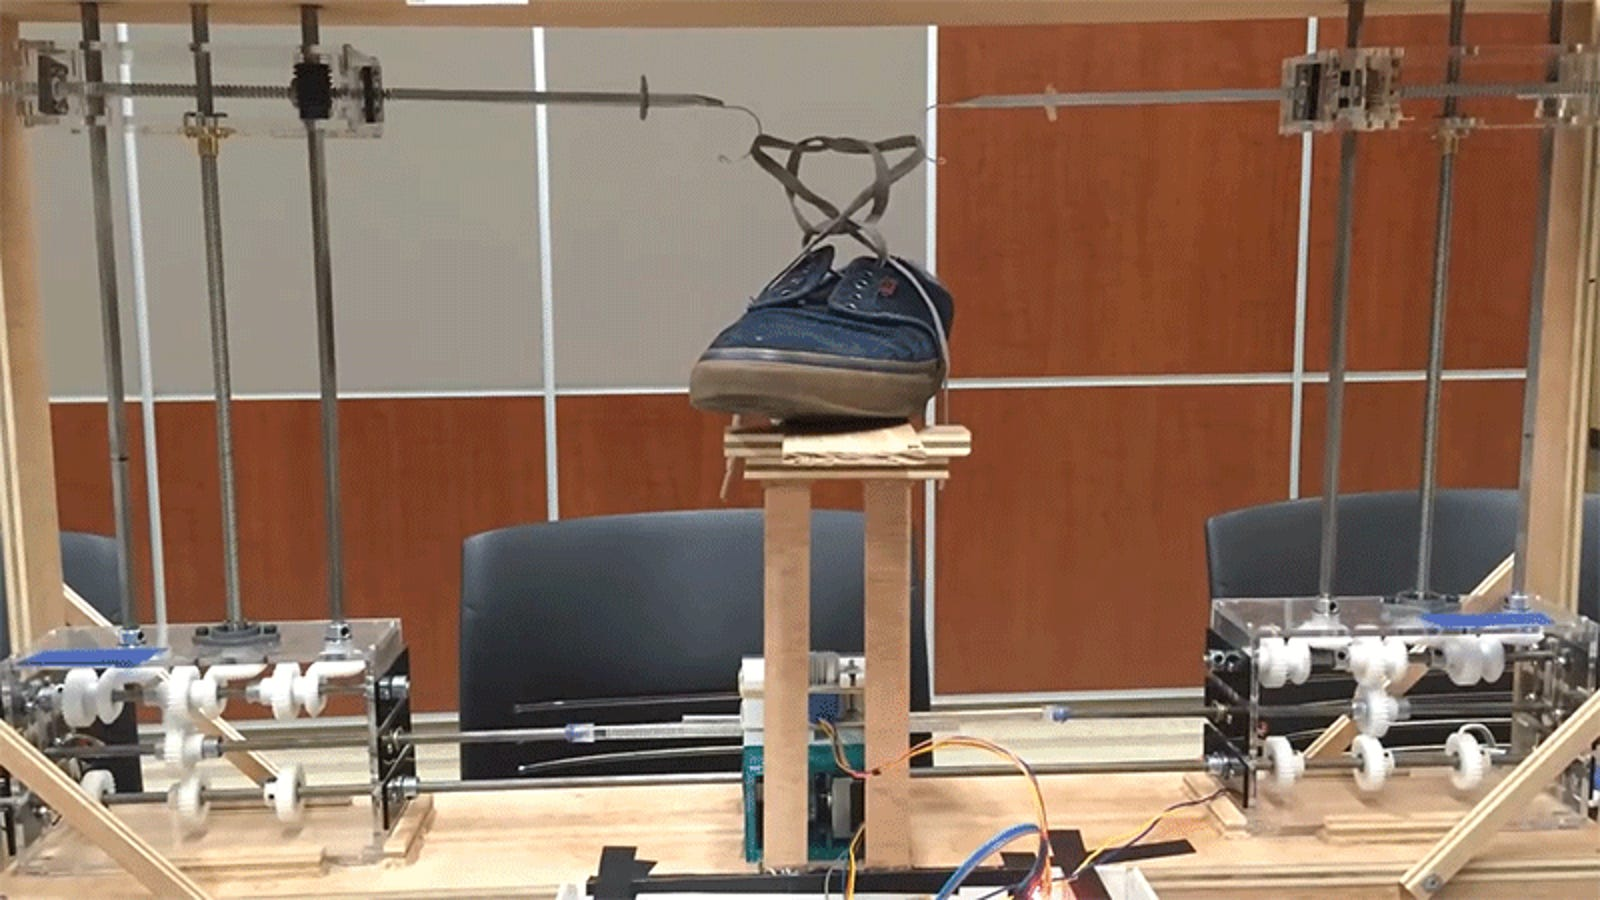 This $600 Shoelace-Tying Robot Was Built on a Shoestring Budget